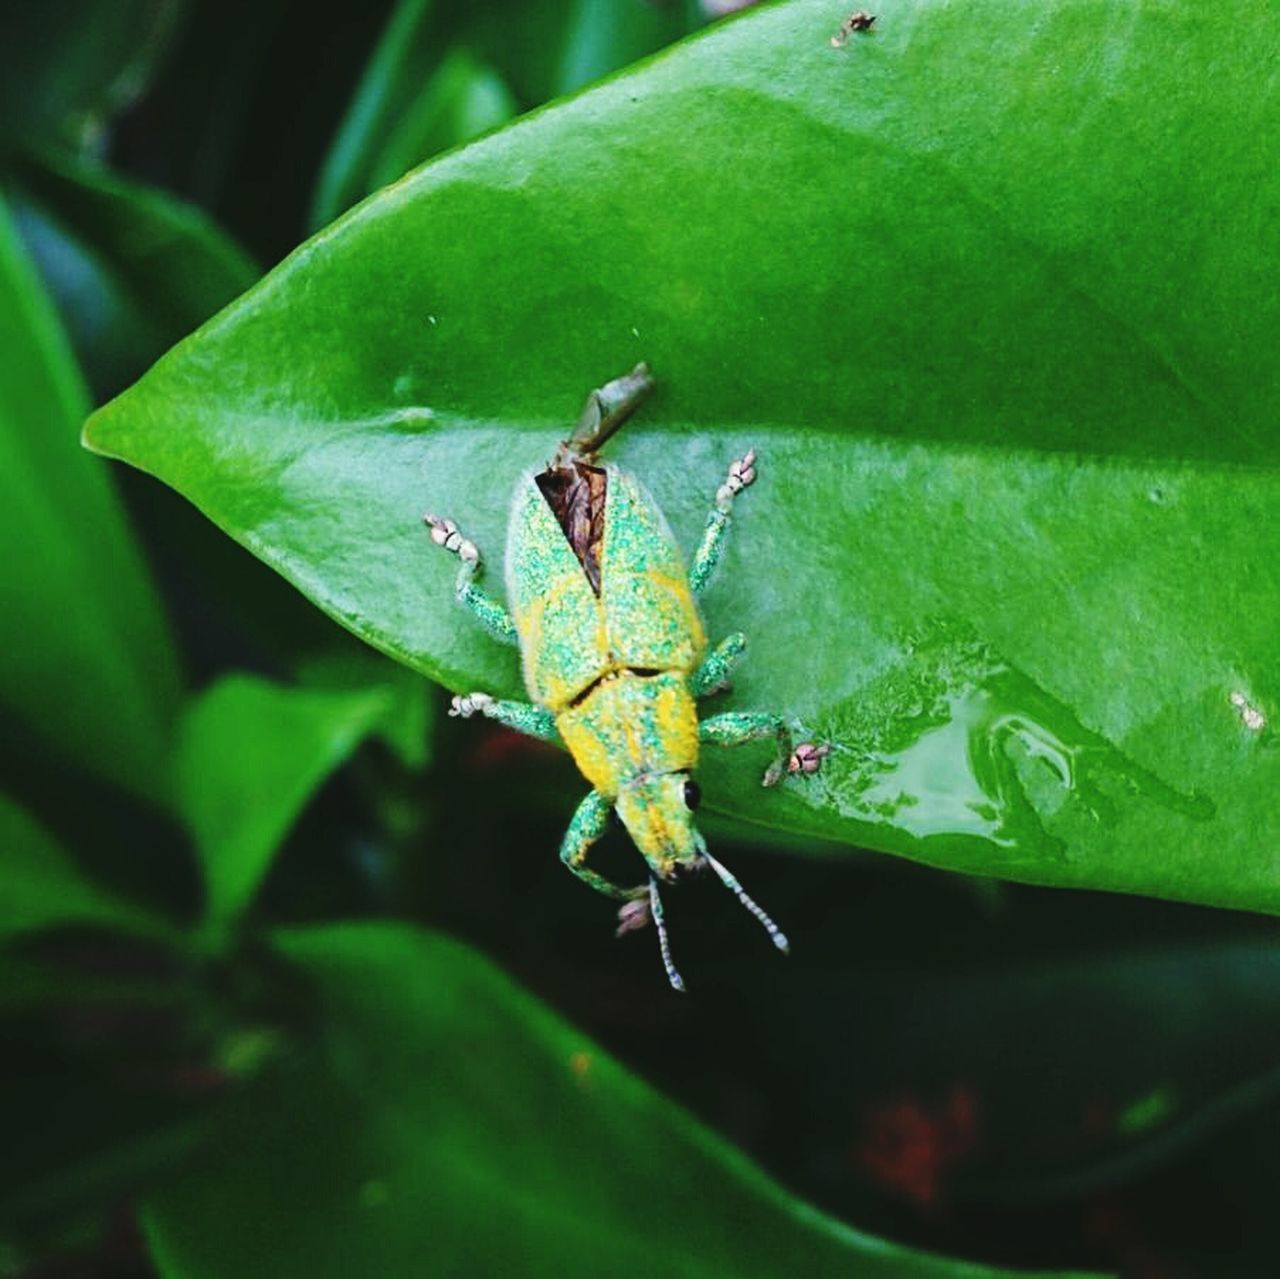 animals in the wild, animal themes, green color, insect, leaf, one animal, nature, animal wildlife, no people, close-up, day, outdoors, plant, grasshopper, growth, beauty in nature